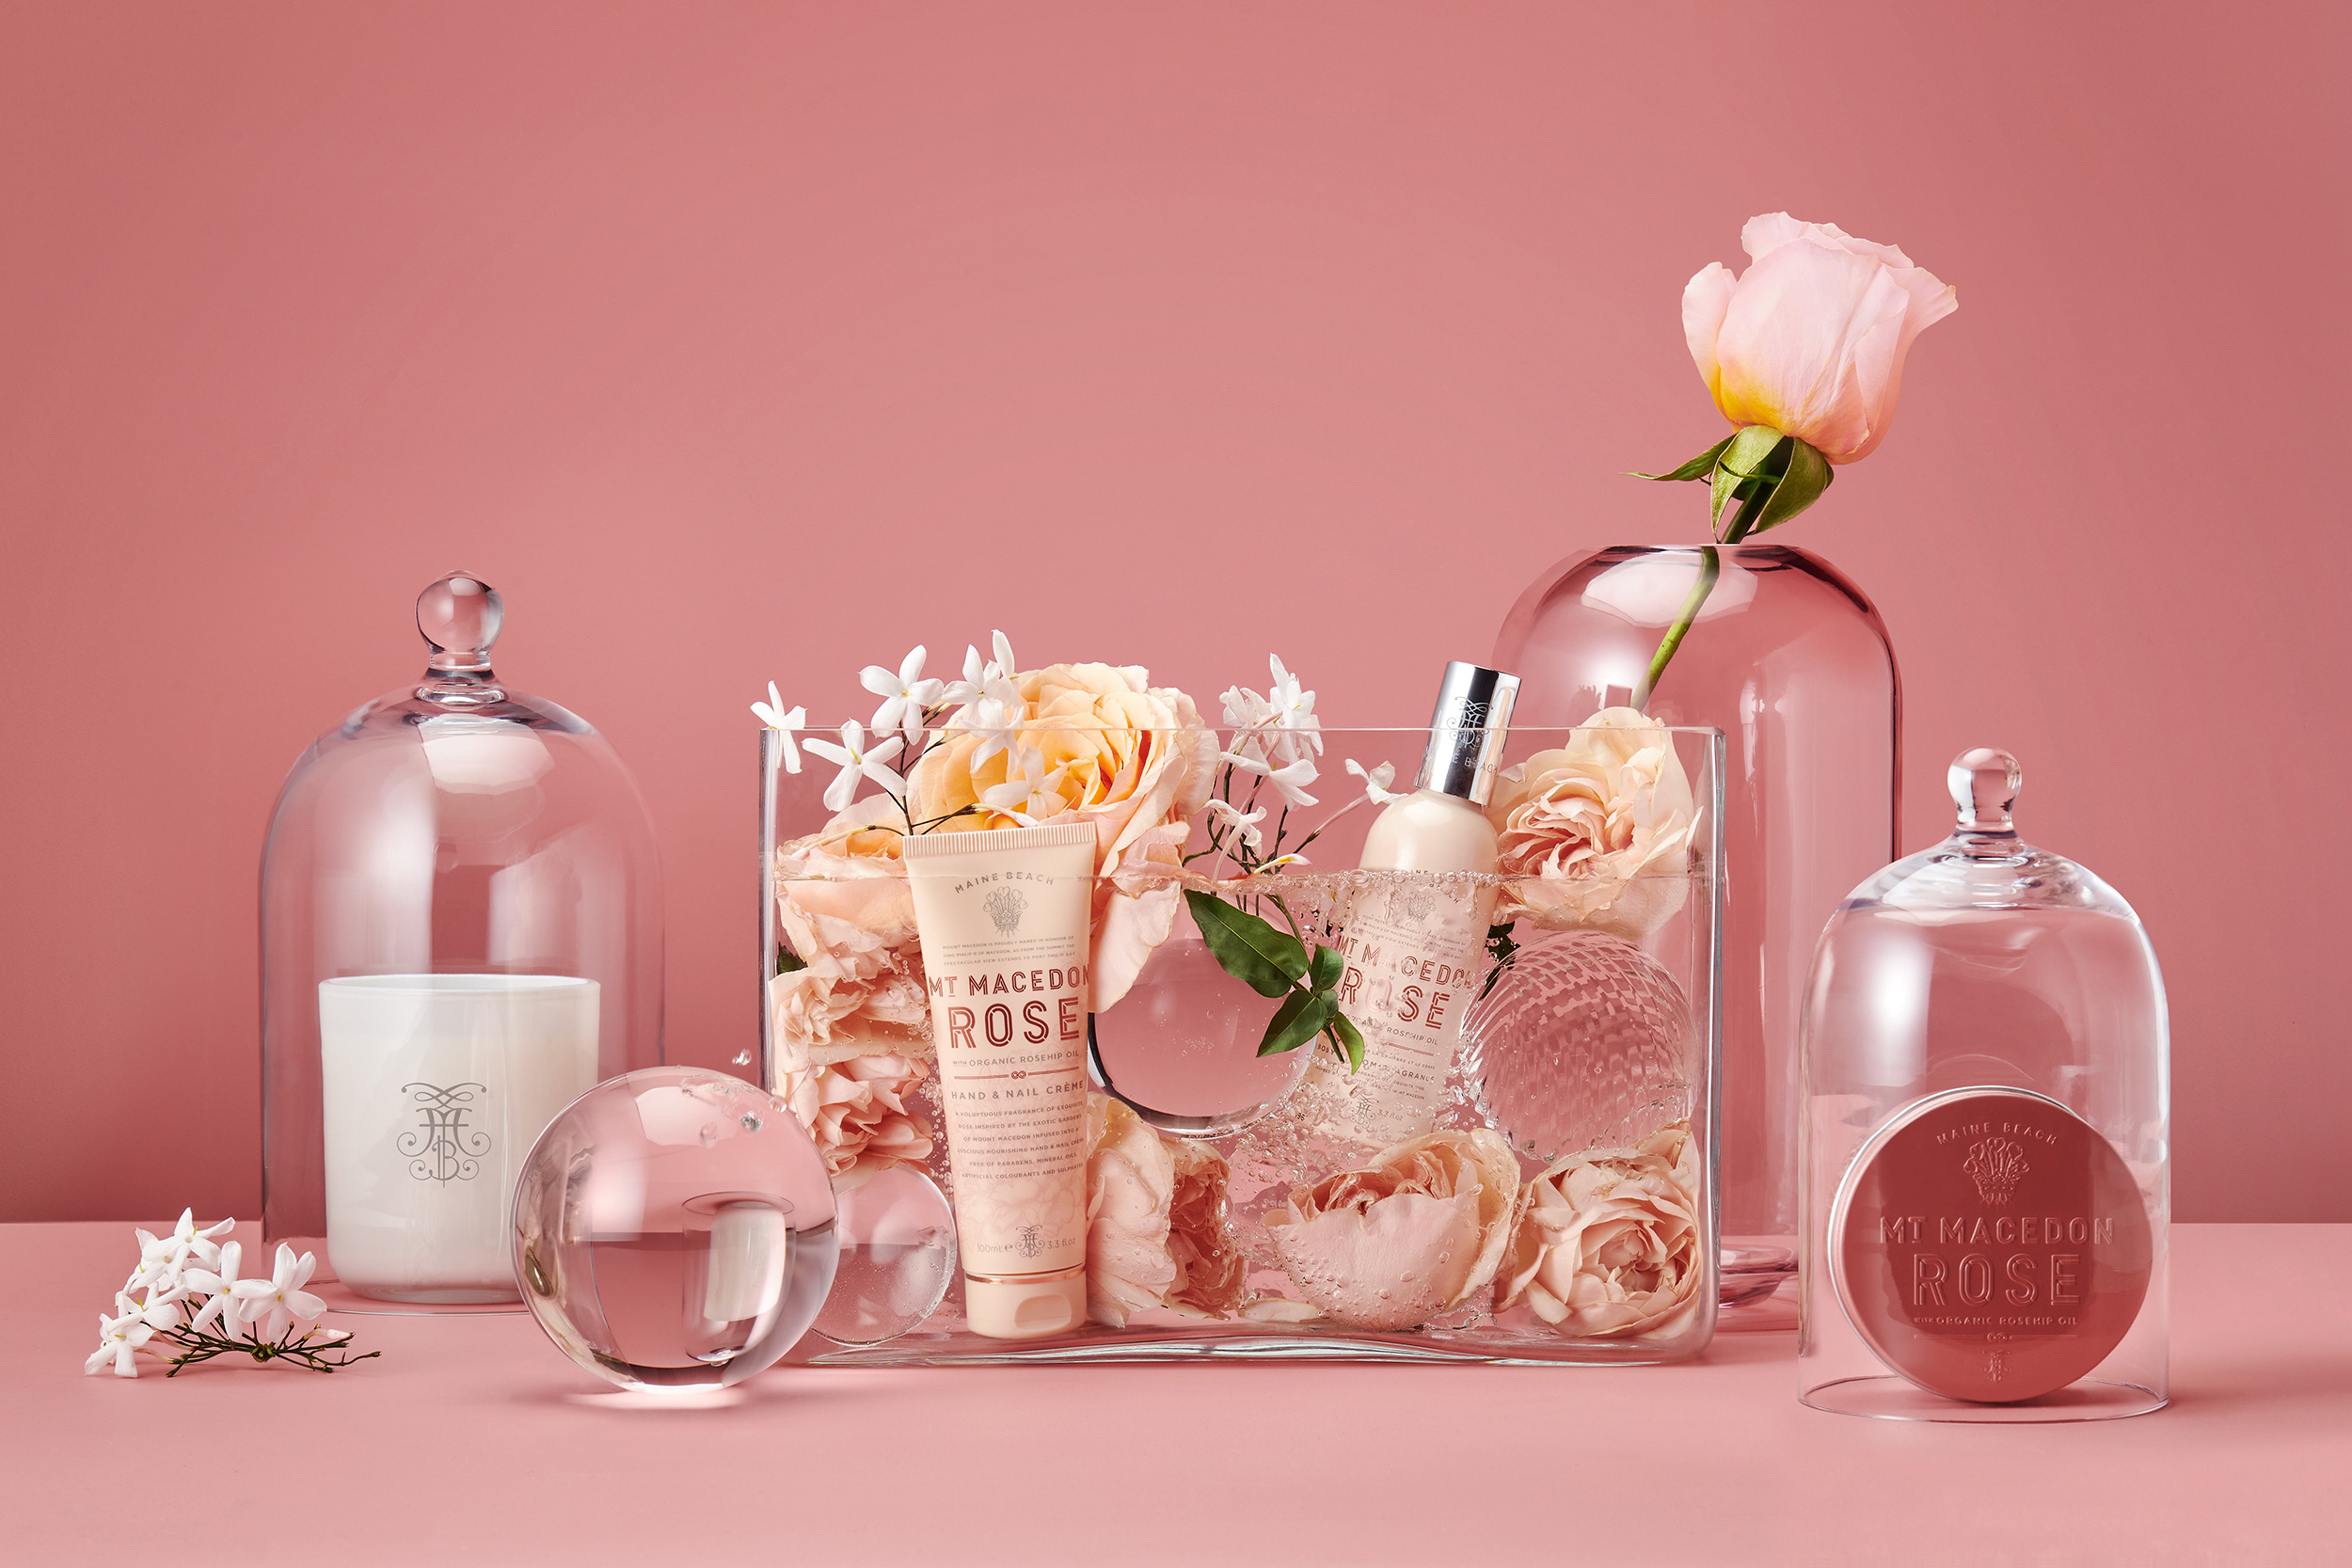 Harcus Design Create Brand Identity and Packaging Design for Maine Beach Mt Macedon Rose Bodycare and Home Frangrances